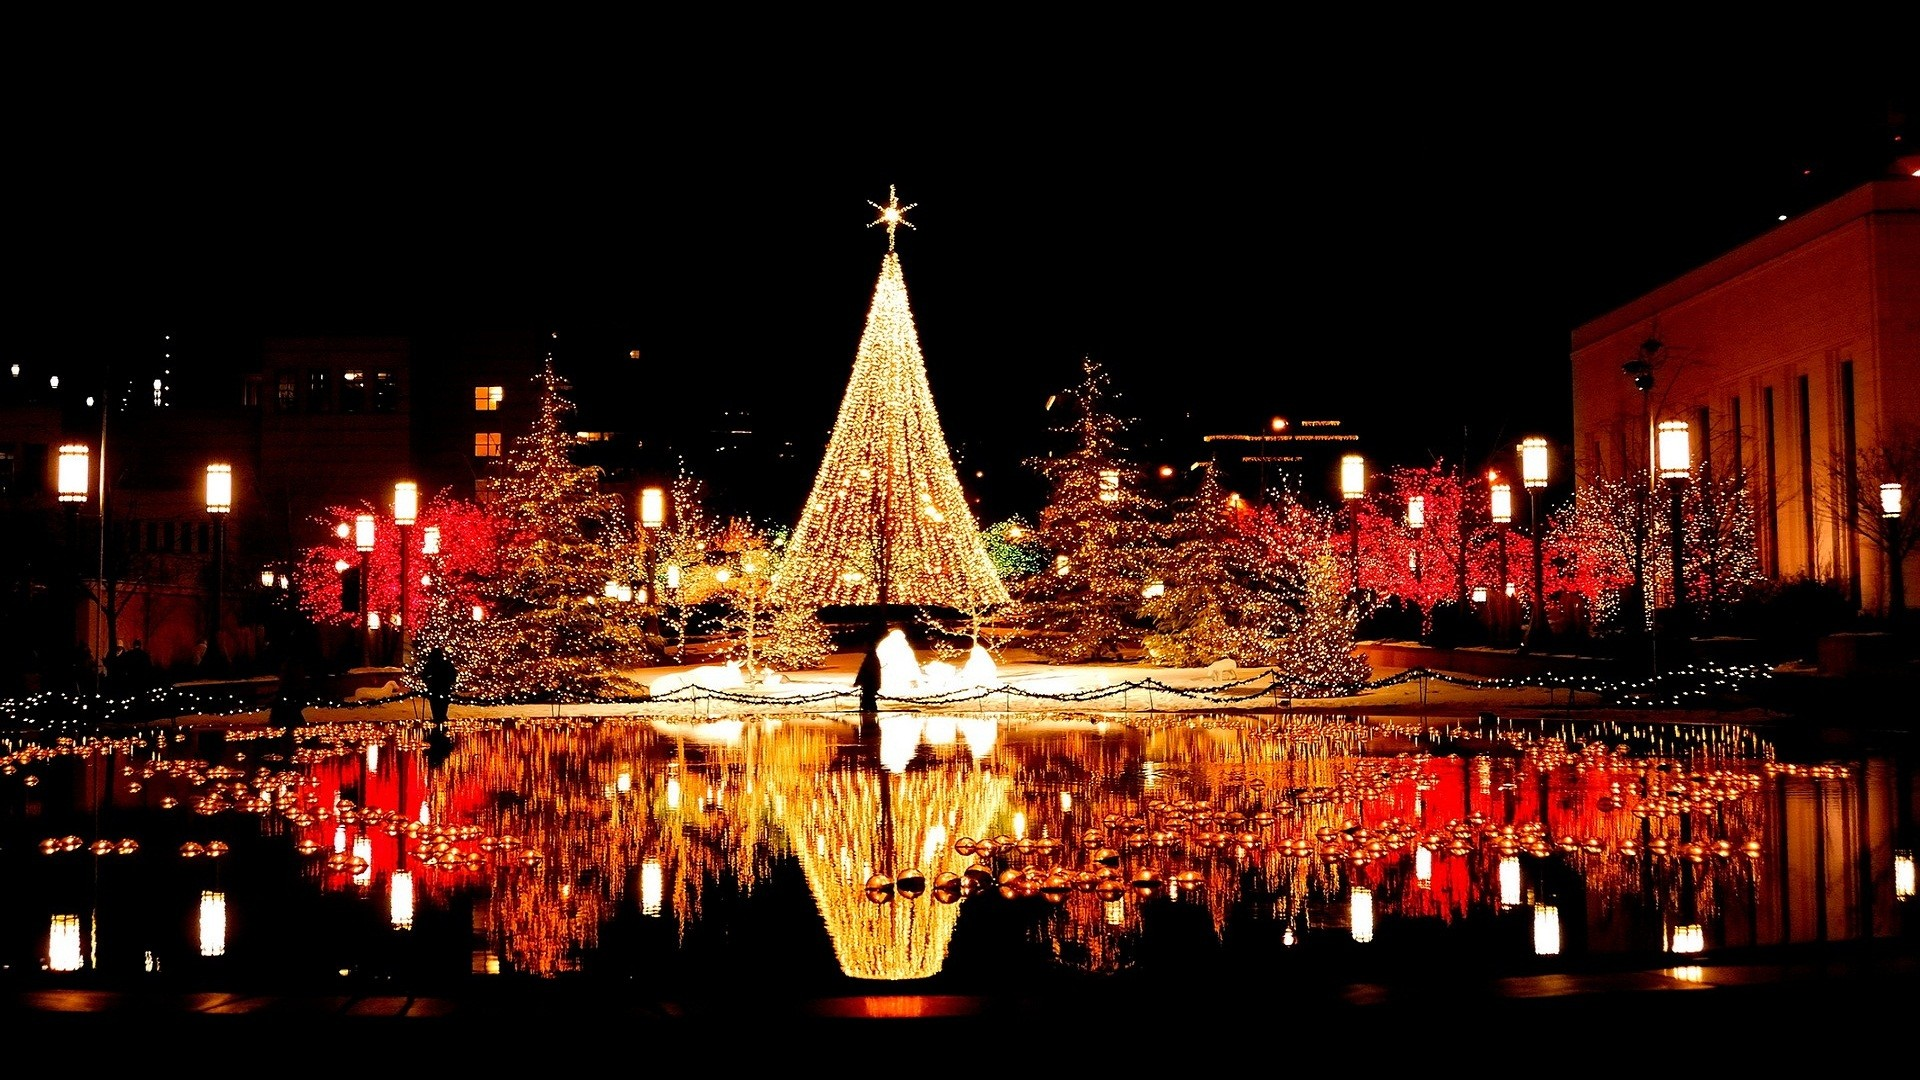 1920x1080 Christmas Reflection Light 1080p Hd Photos